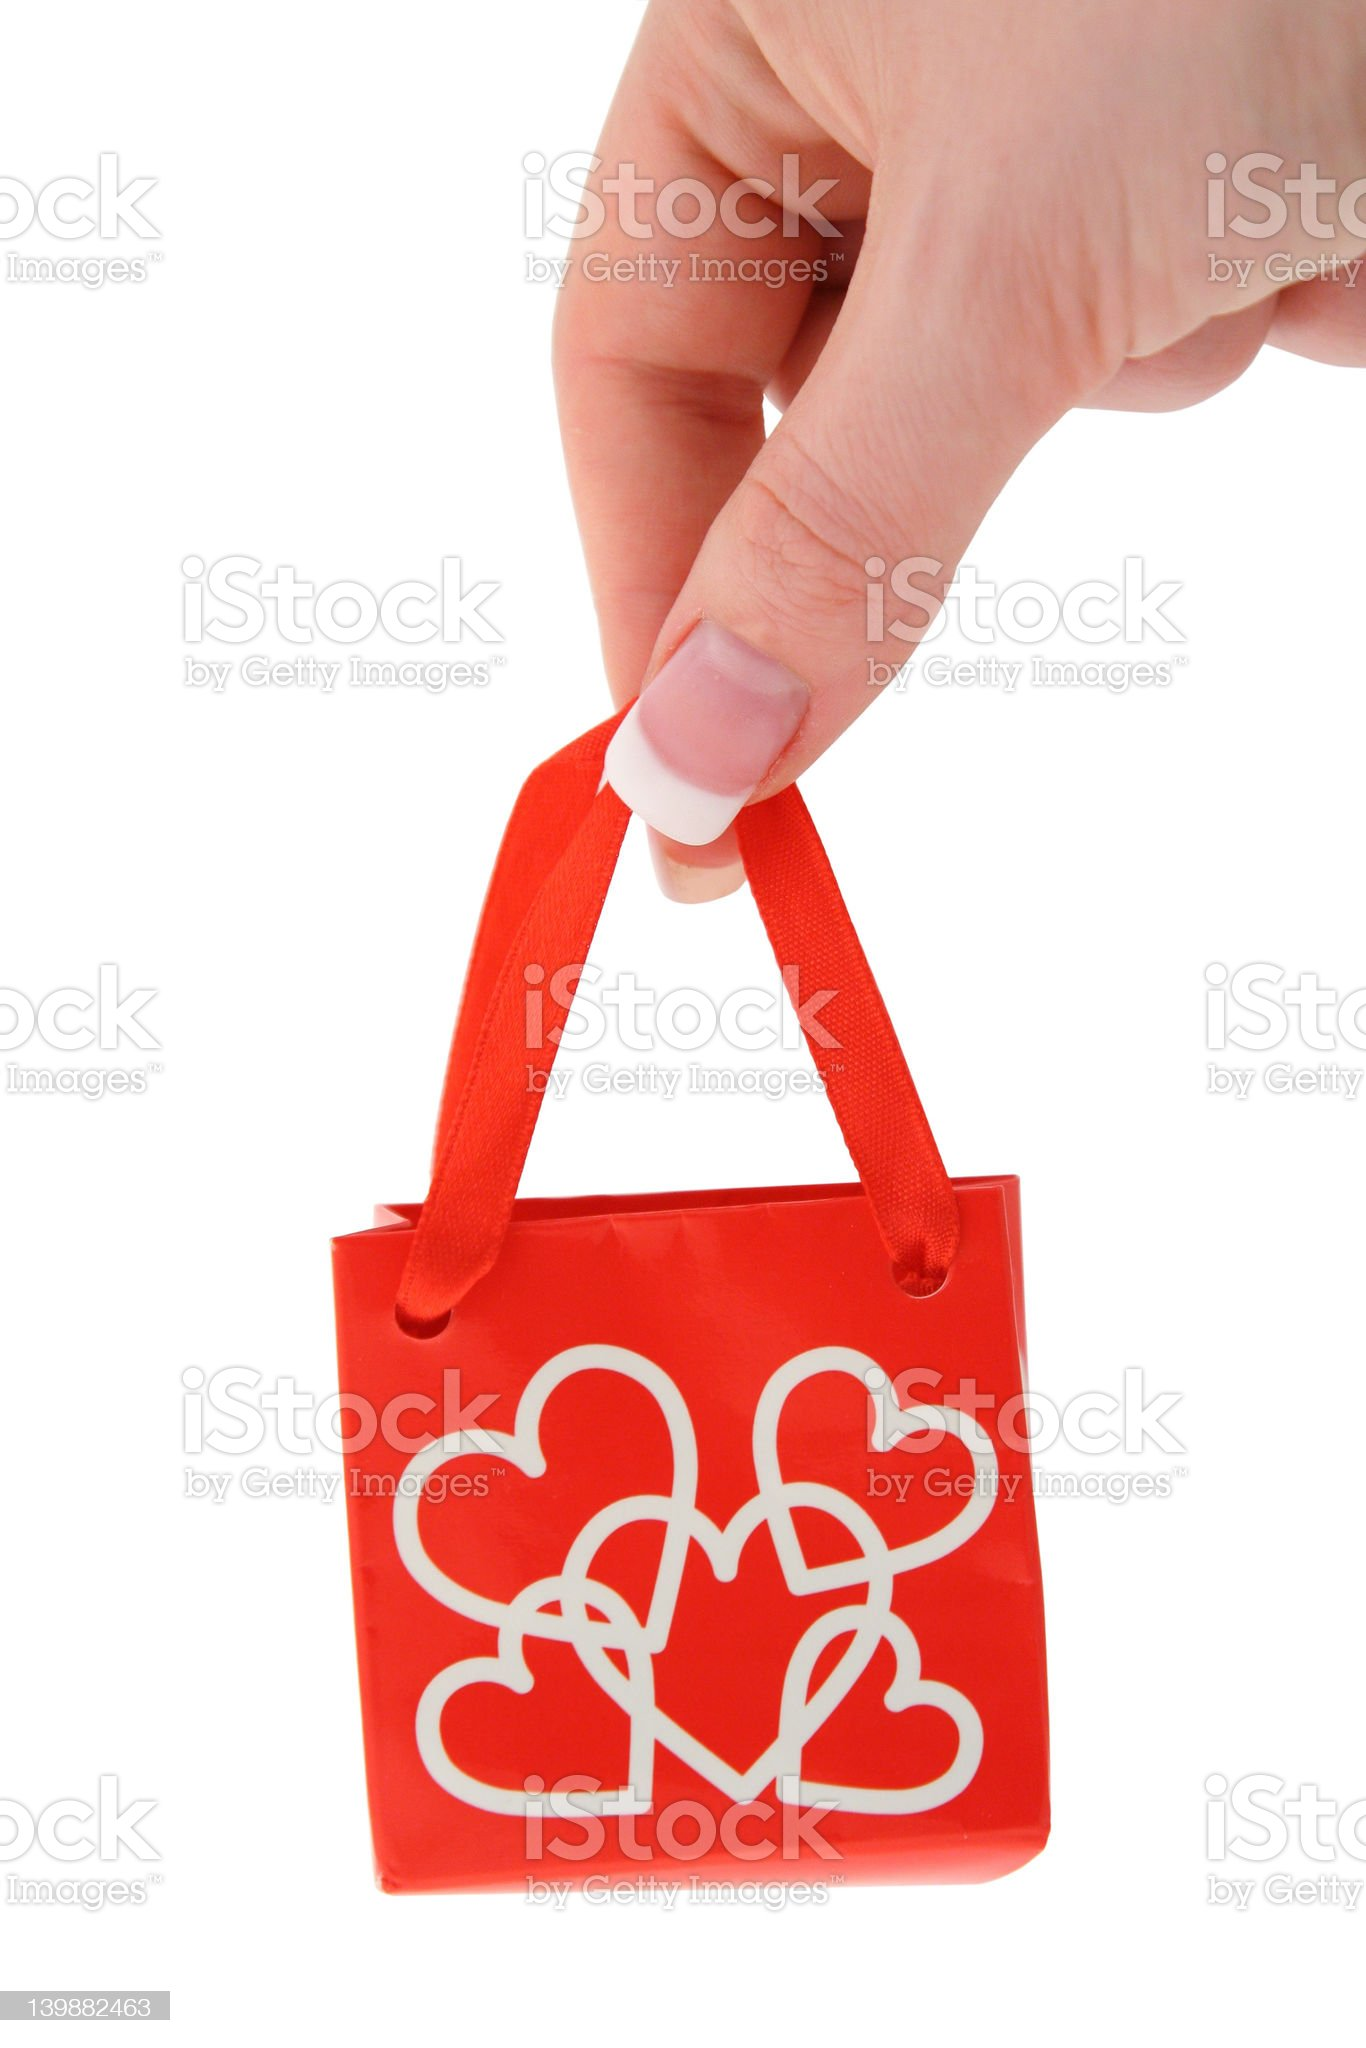 holding love gift bag #2 royalty-free stock photo